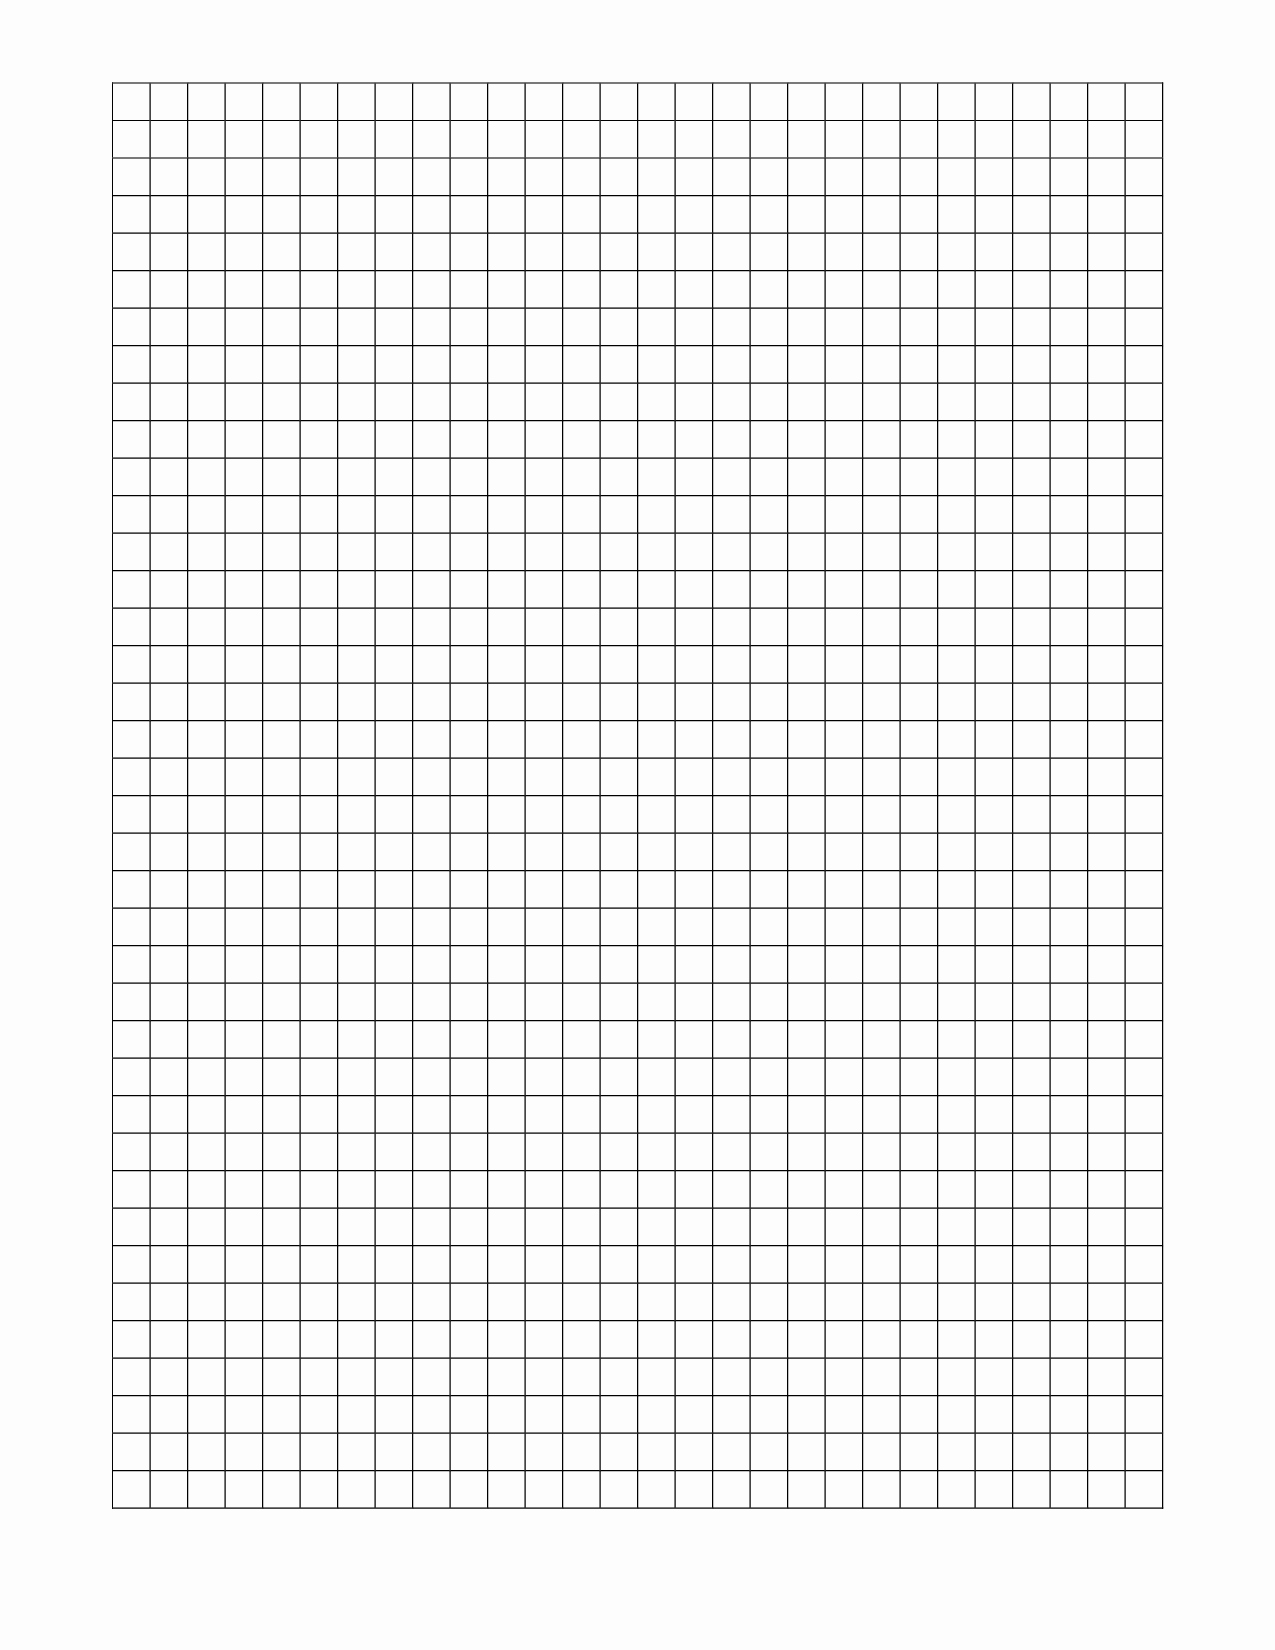 Graph Paper Template Excel Best Of Make Graph Paper In Excel 2013 Printable Graph Paper and